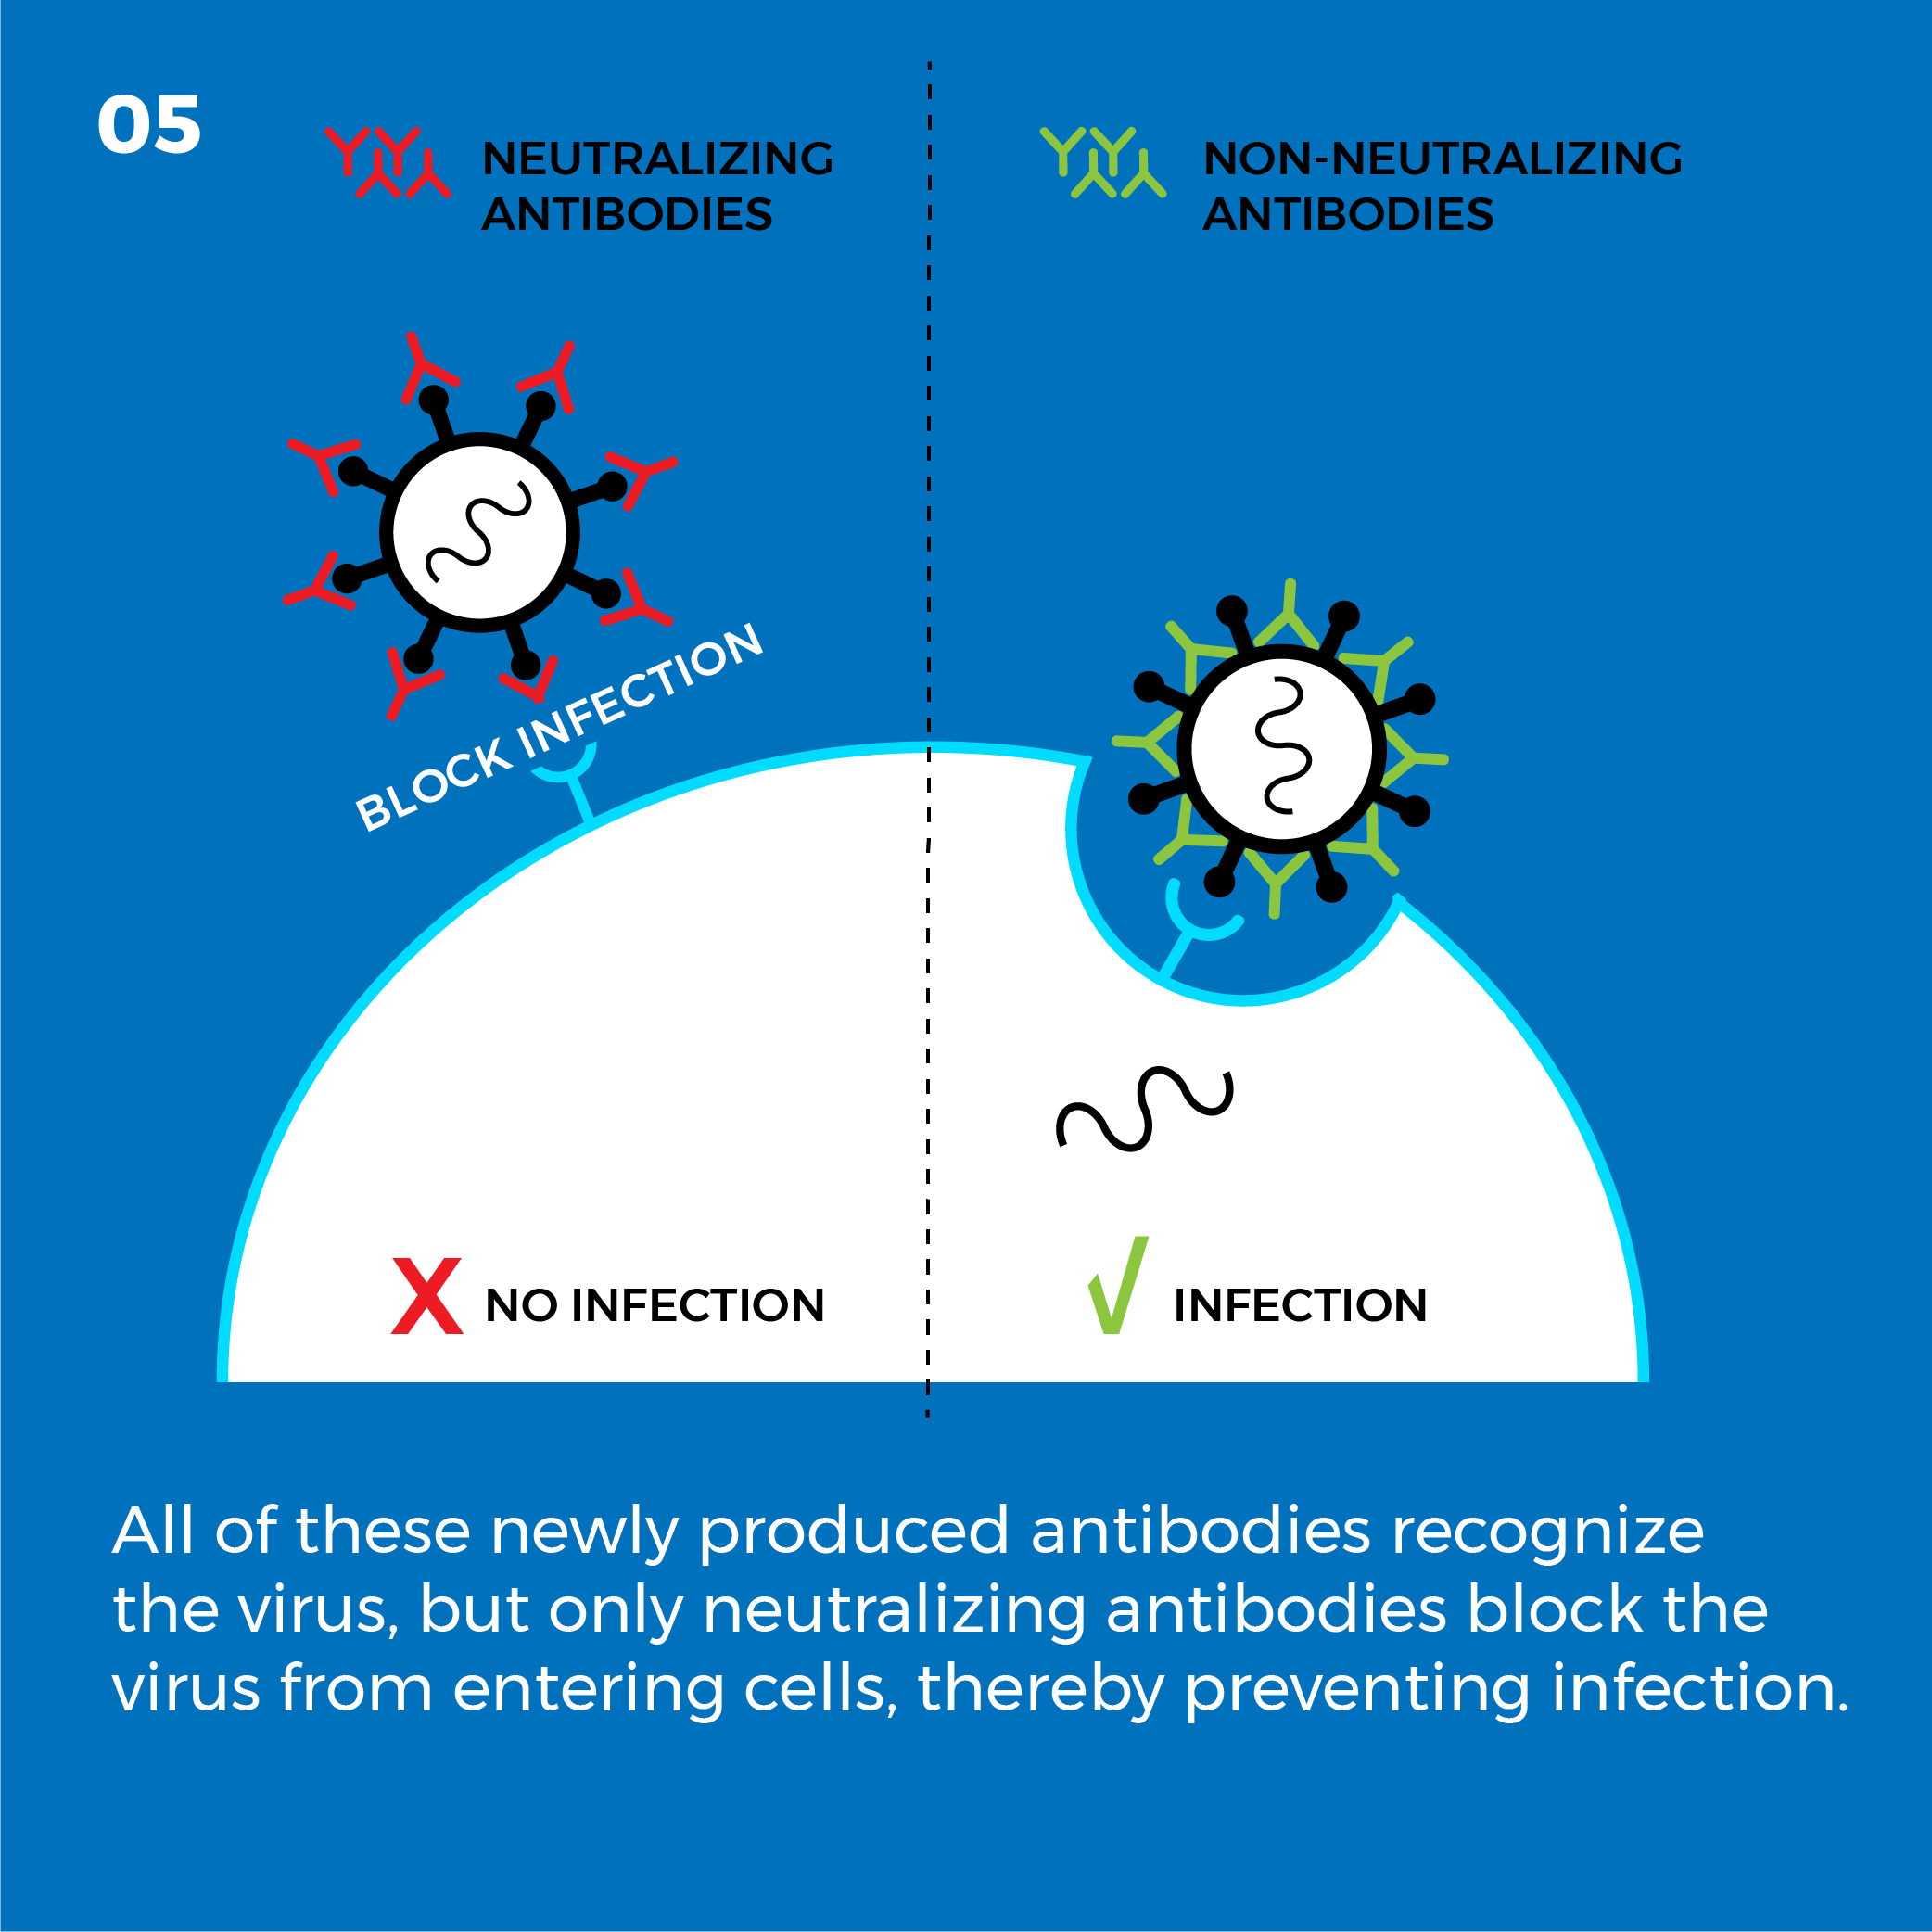 All of these newly produced antibodies recognize the virus, but only neutralizing antibodies block the virus from entering cells, thereby preventing infection.